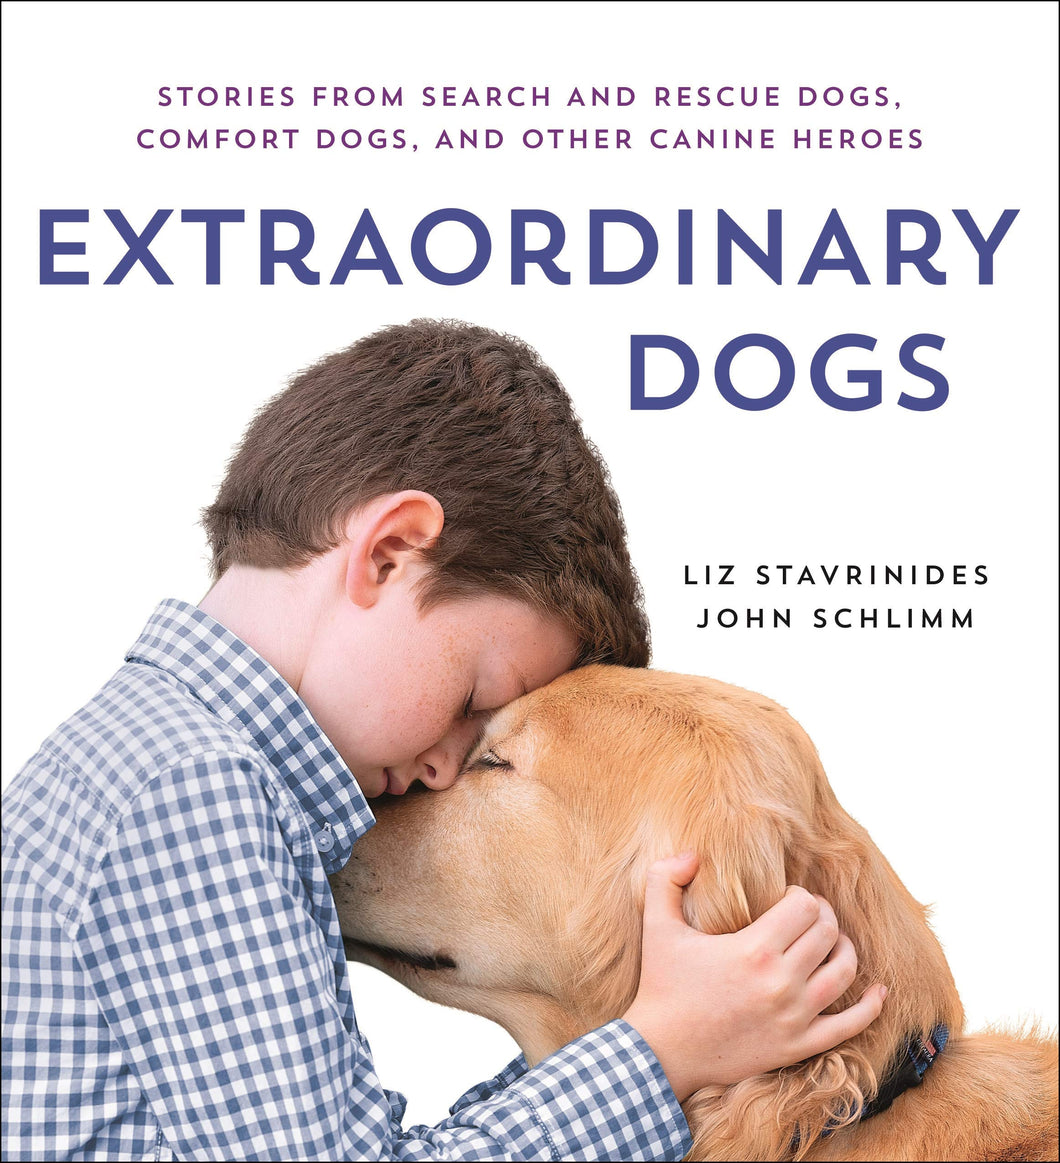 Extraordinary Dogs: Stories from Search and Rescue Dogs, Comfort Dogs, and Other Canine Heroes